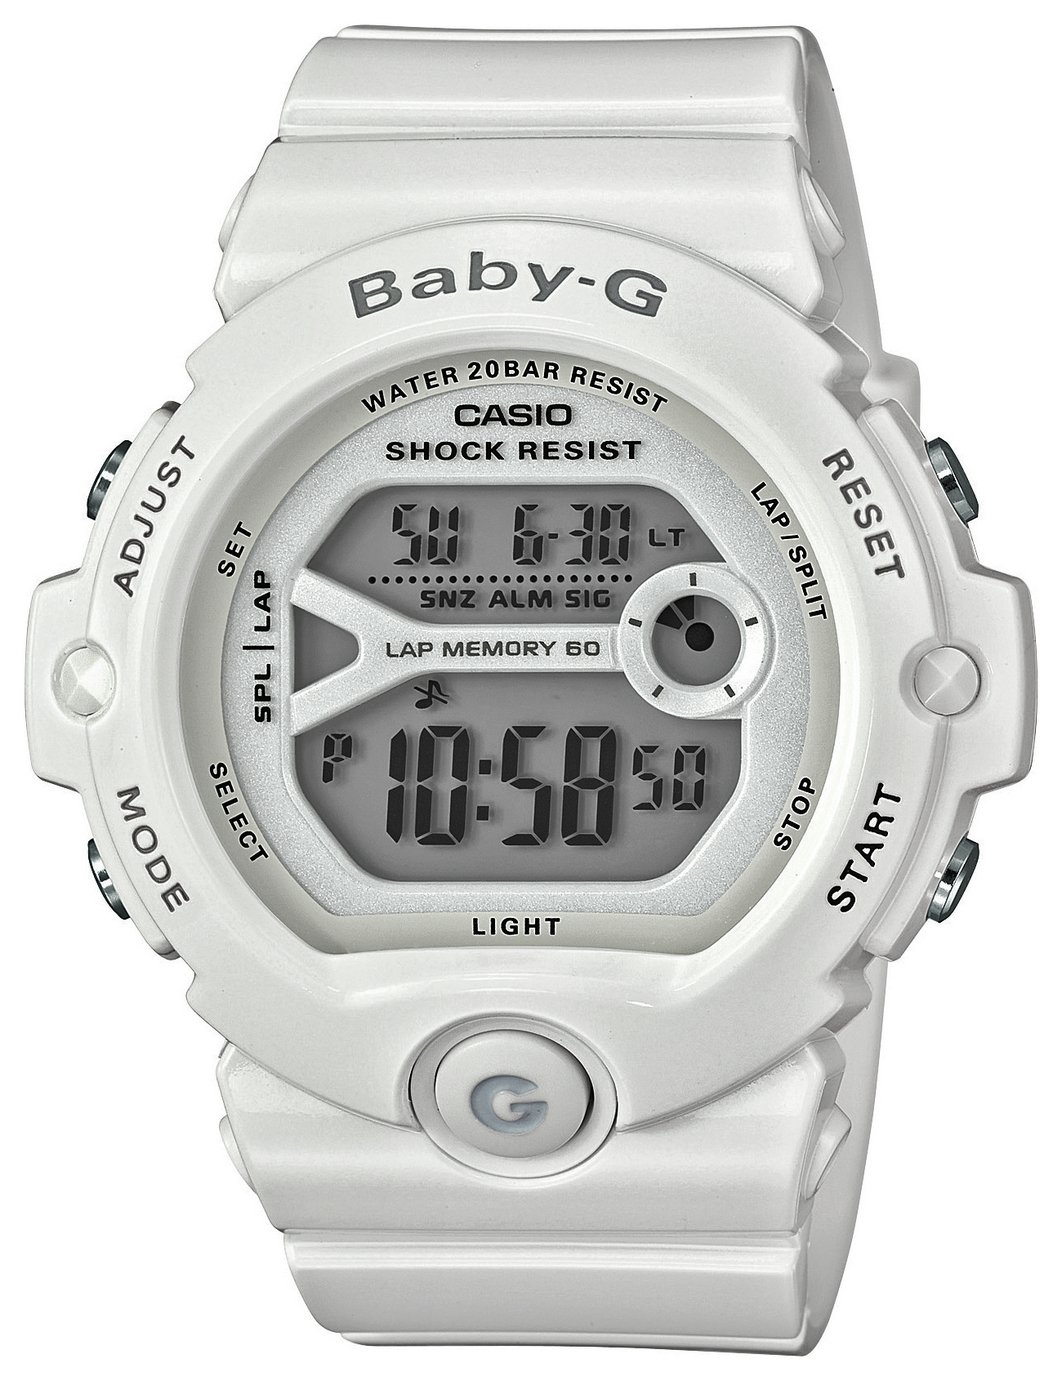 Image of Casio Baby-G Ladies' White Shock Resistant Watch